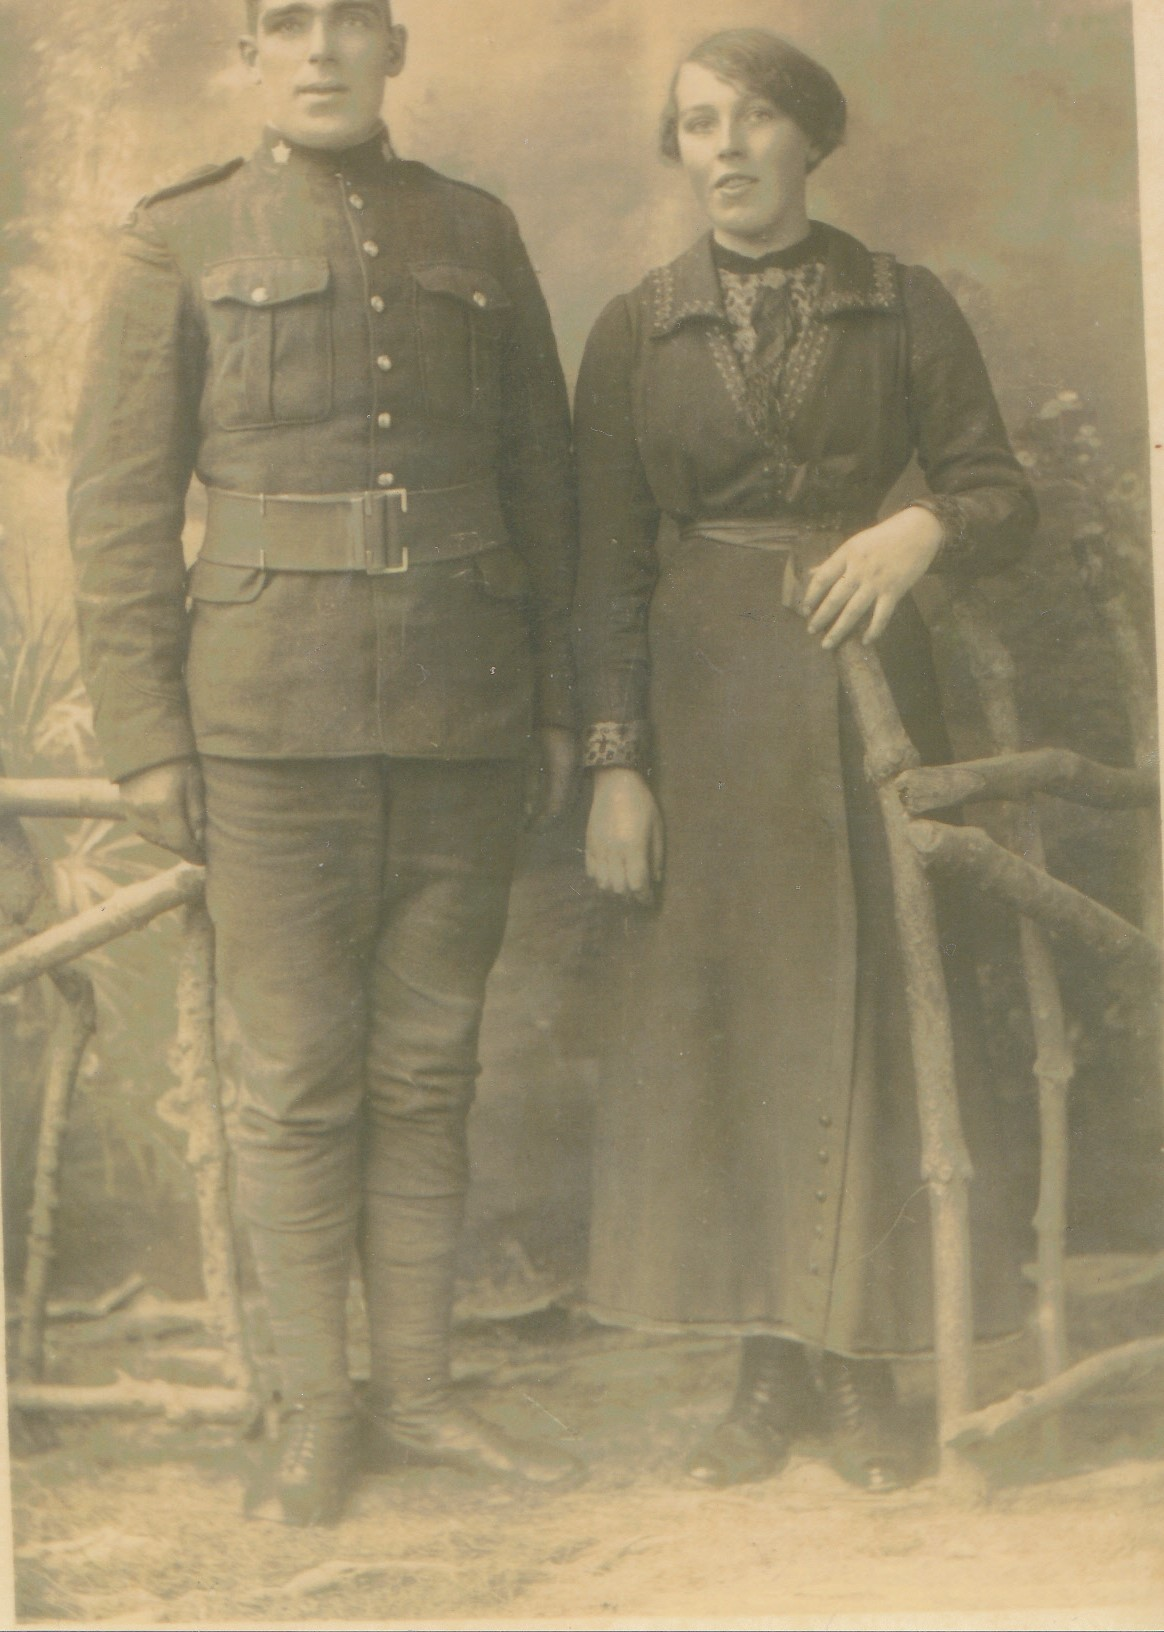 Group Photo– George Gardiner Ross, Served as Gardiner, with sister Libby. Taken prior to shipping out to Belgium 1917